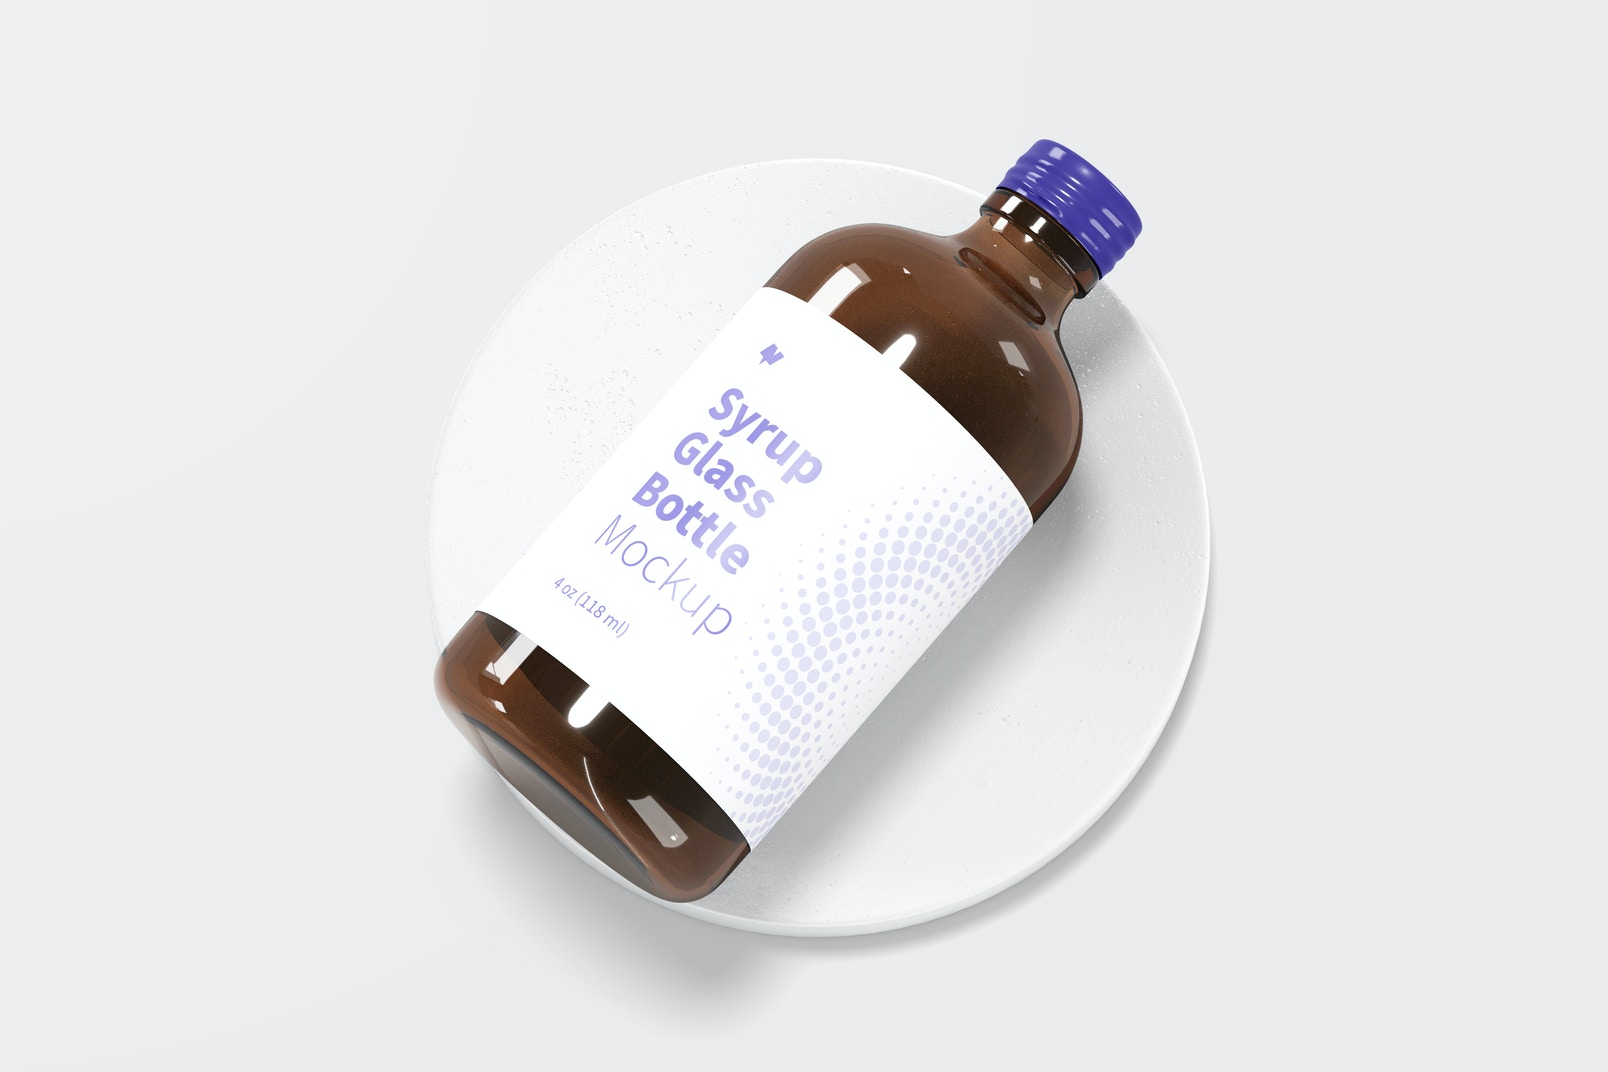 4 oz Syrup Glass Bottle Mockup, Top View